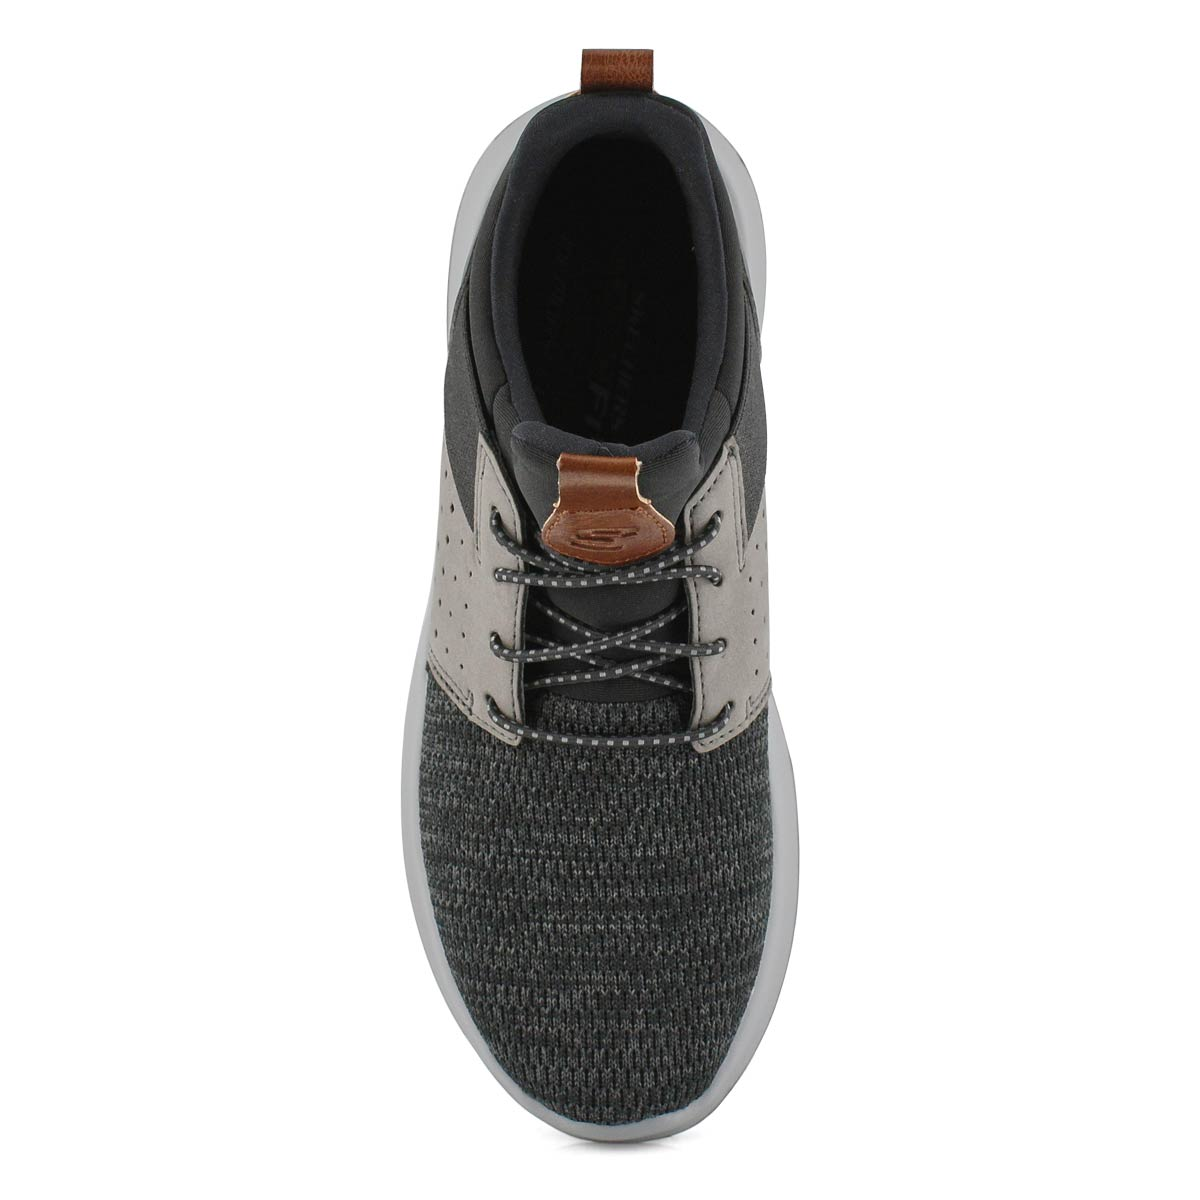 Mns Delson Camben blk/gry slip on snkr